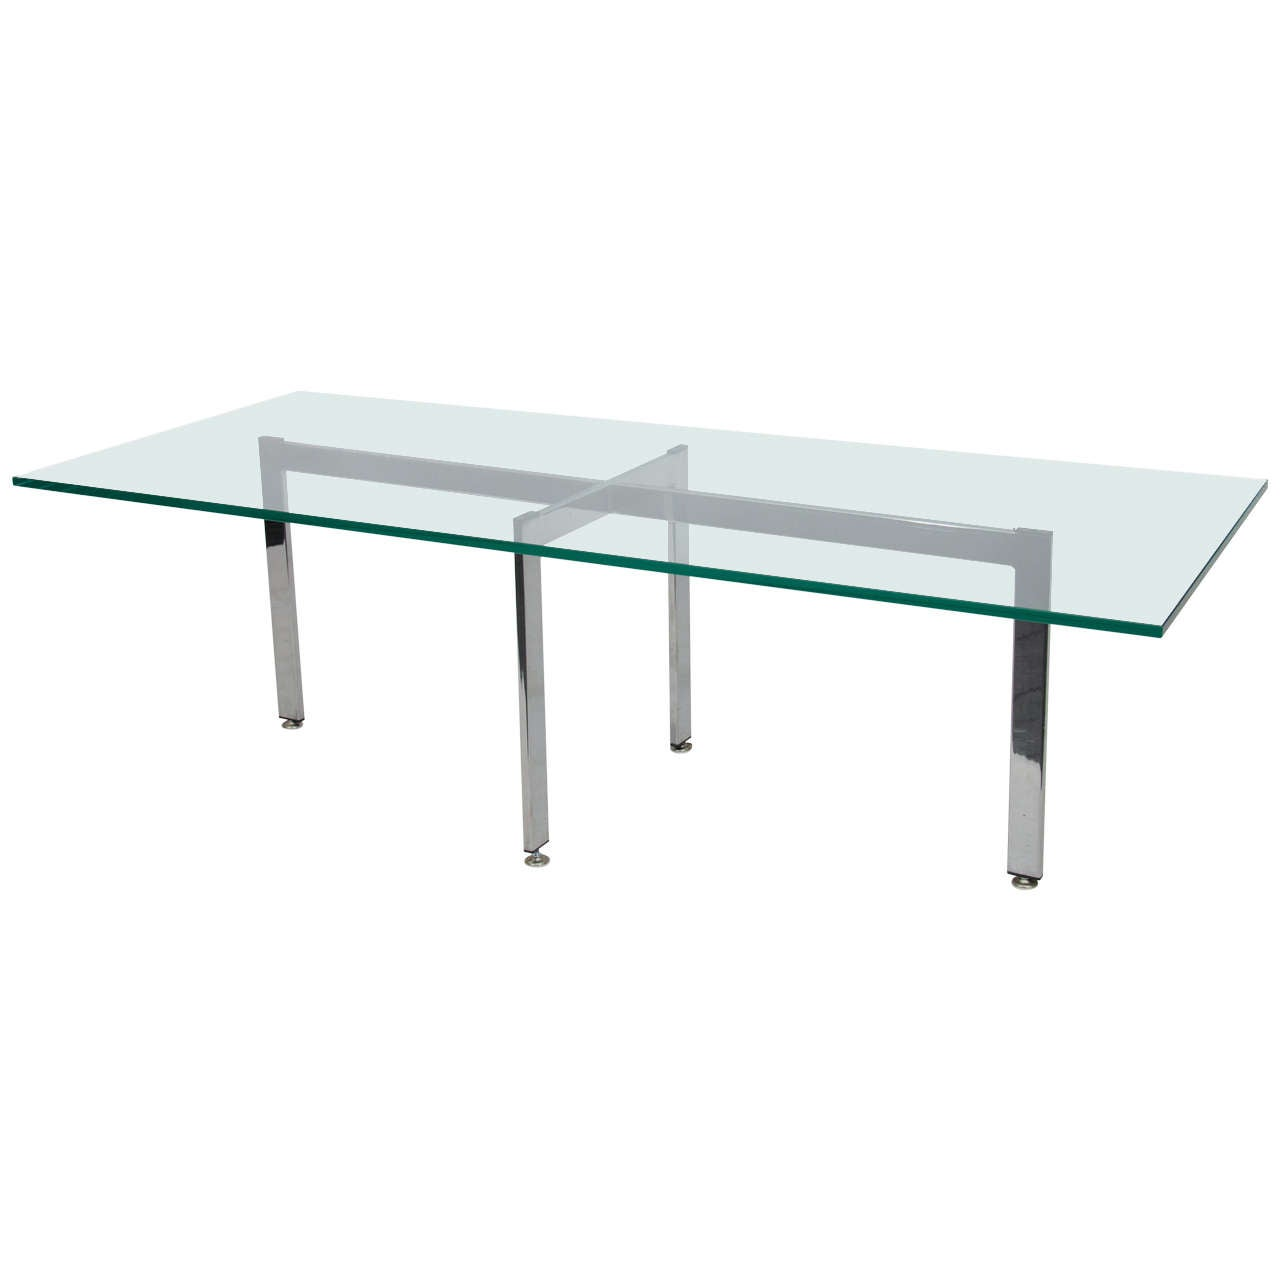 Chrome and glass rectangular coffee table at 1stdibs - Rectangular glass coffee table ...